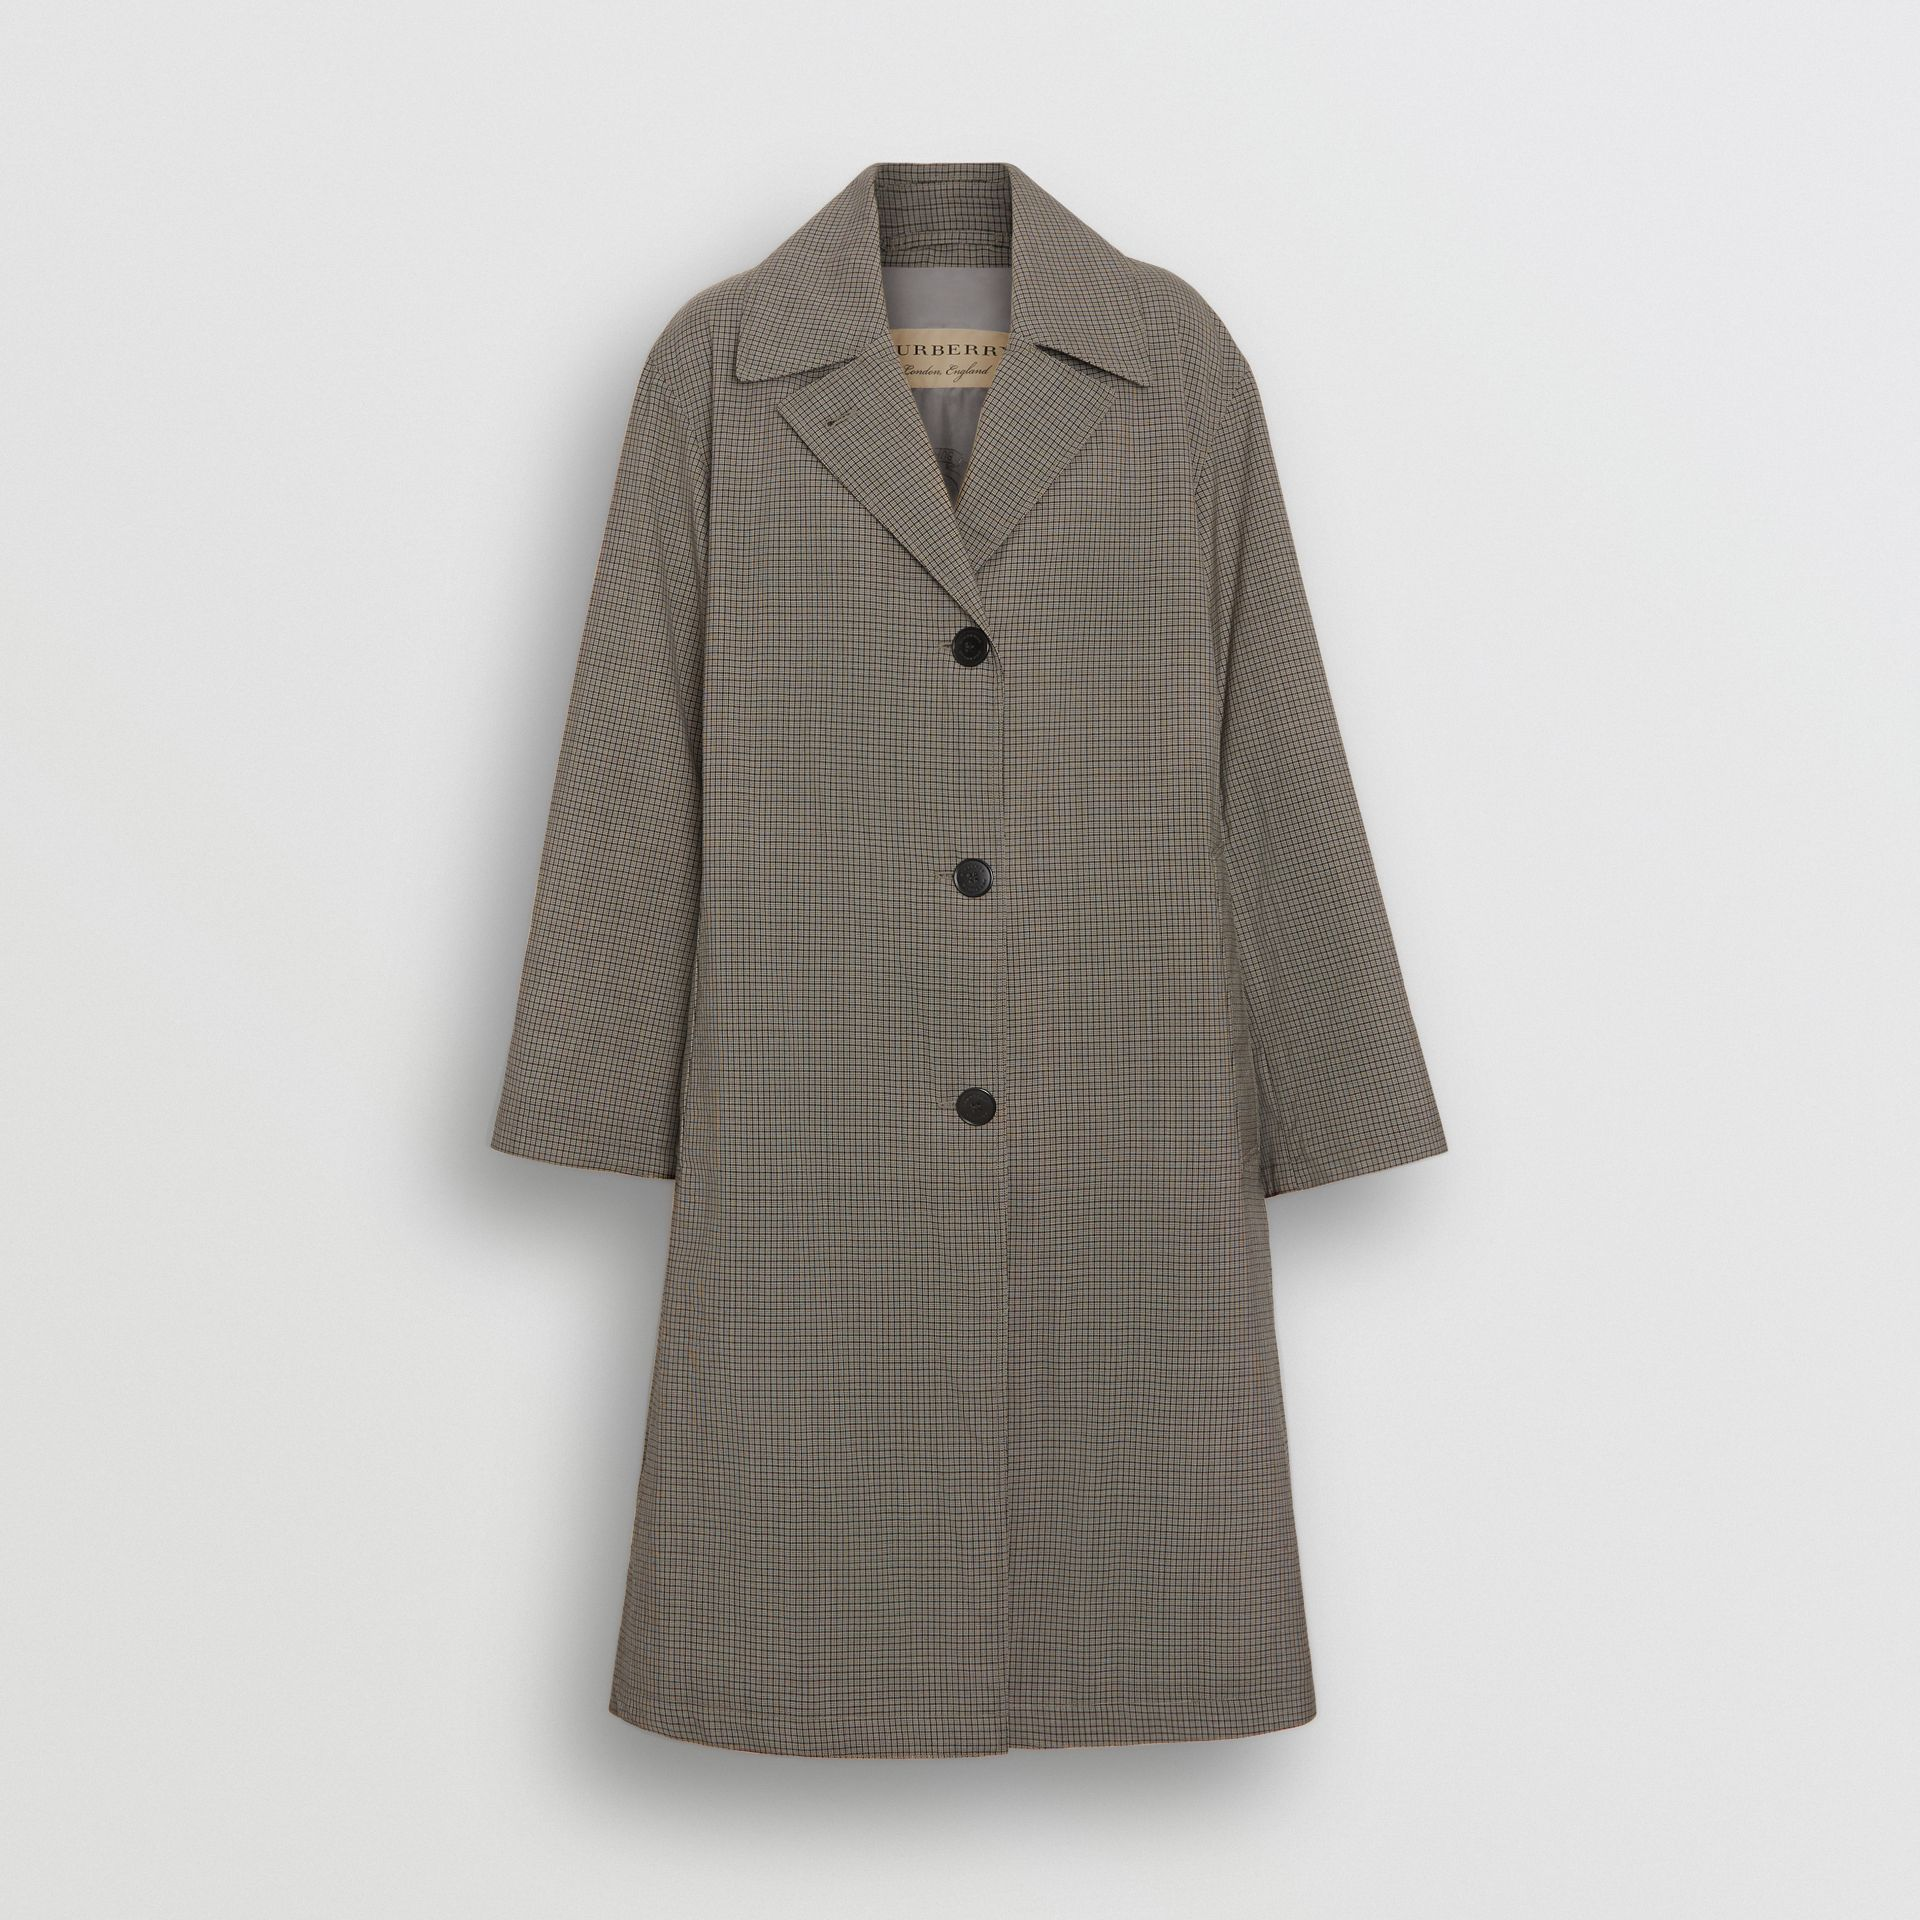 Check Wool Oversized Coat in Taupe - Women | Burberry - gallery image 3